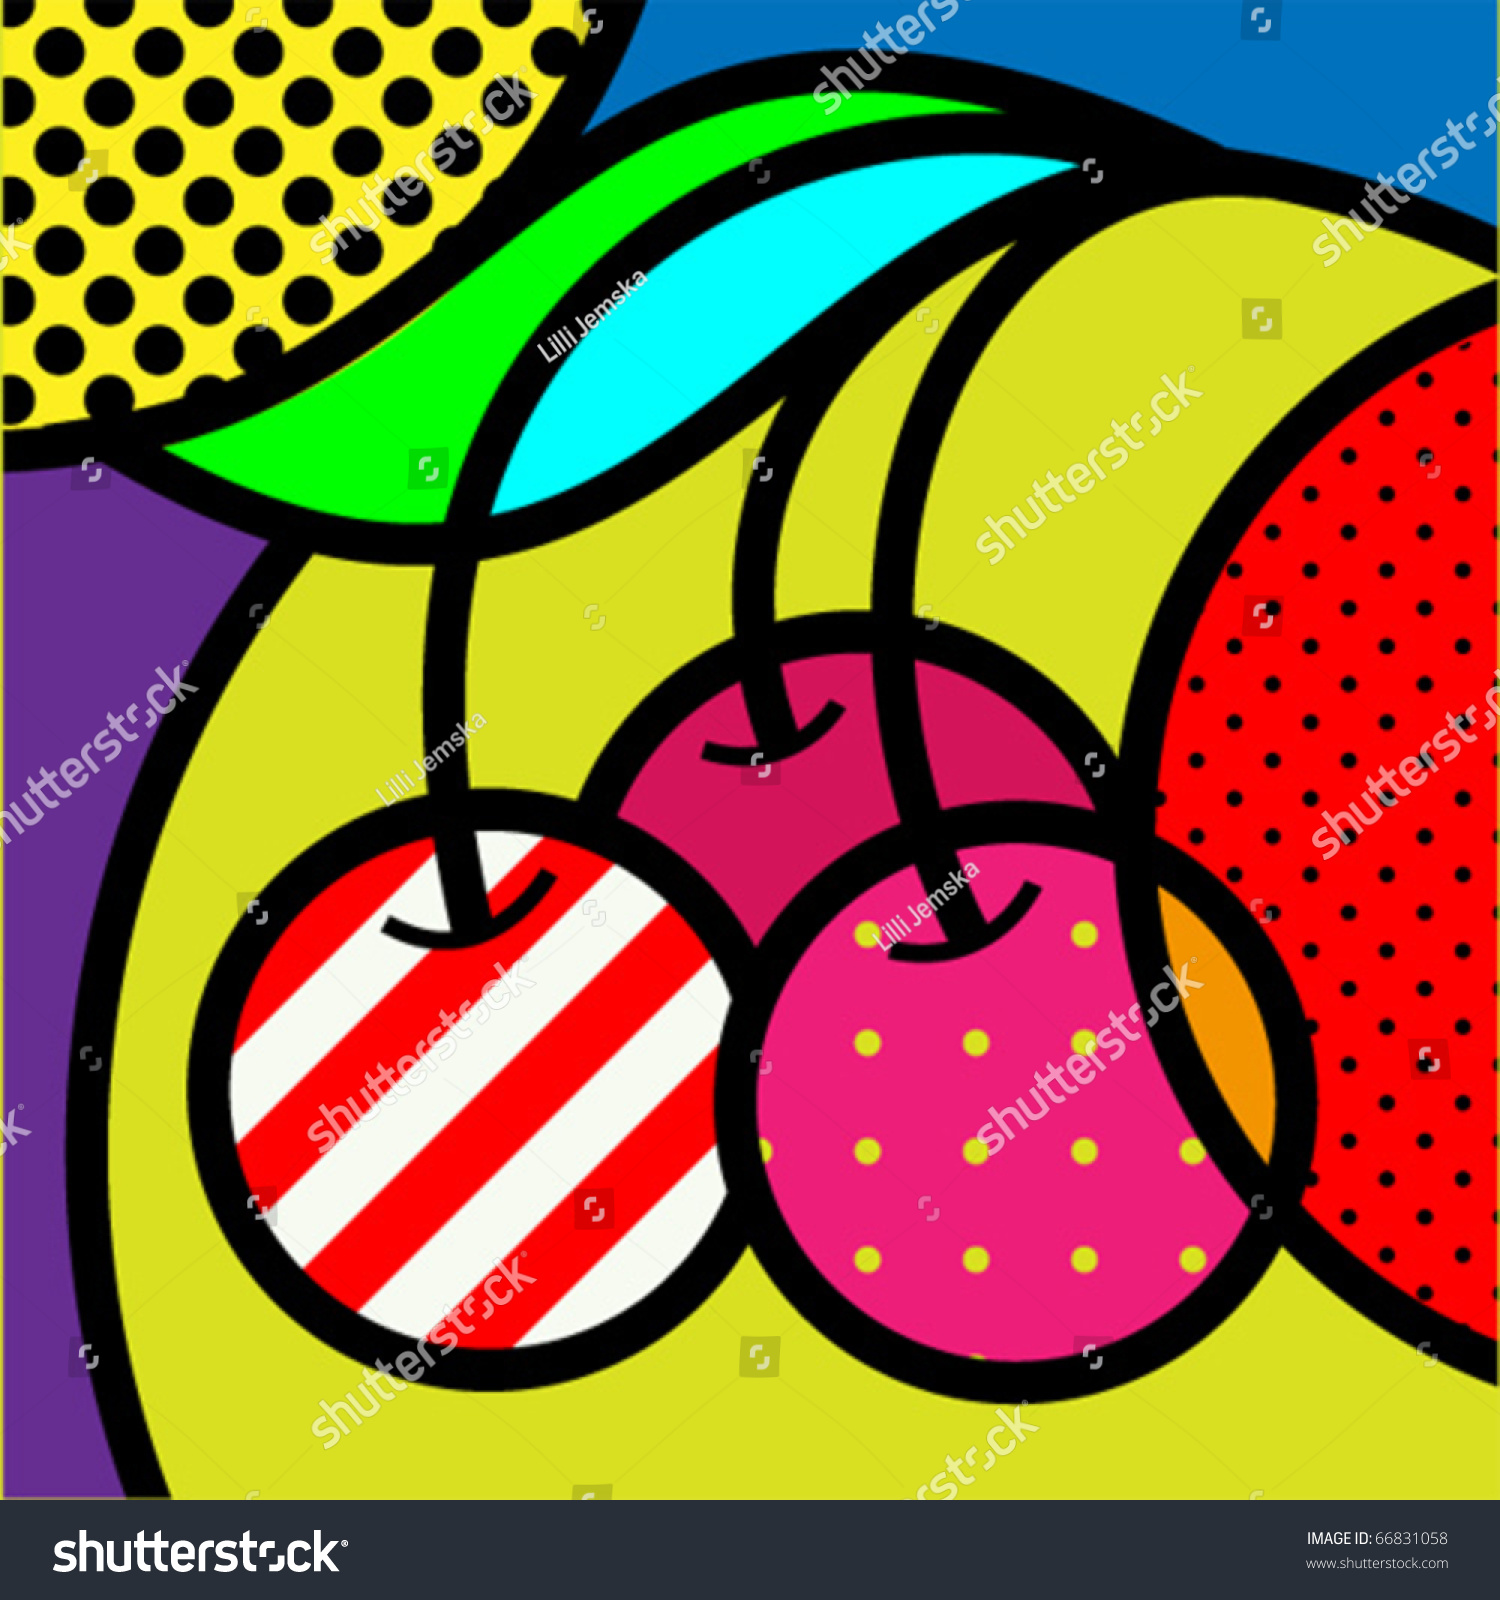 cherry popart fruits vector illustration design stock. Black Bedroom Furniture Sets. Home Design Ideas